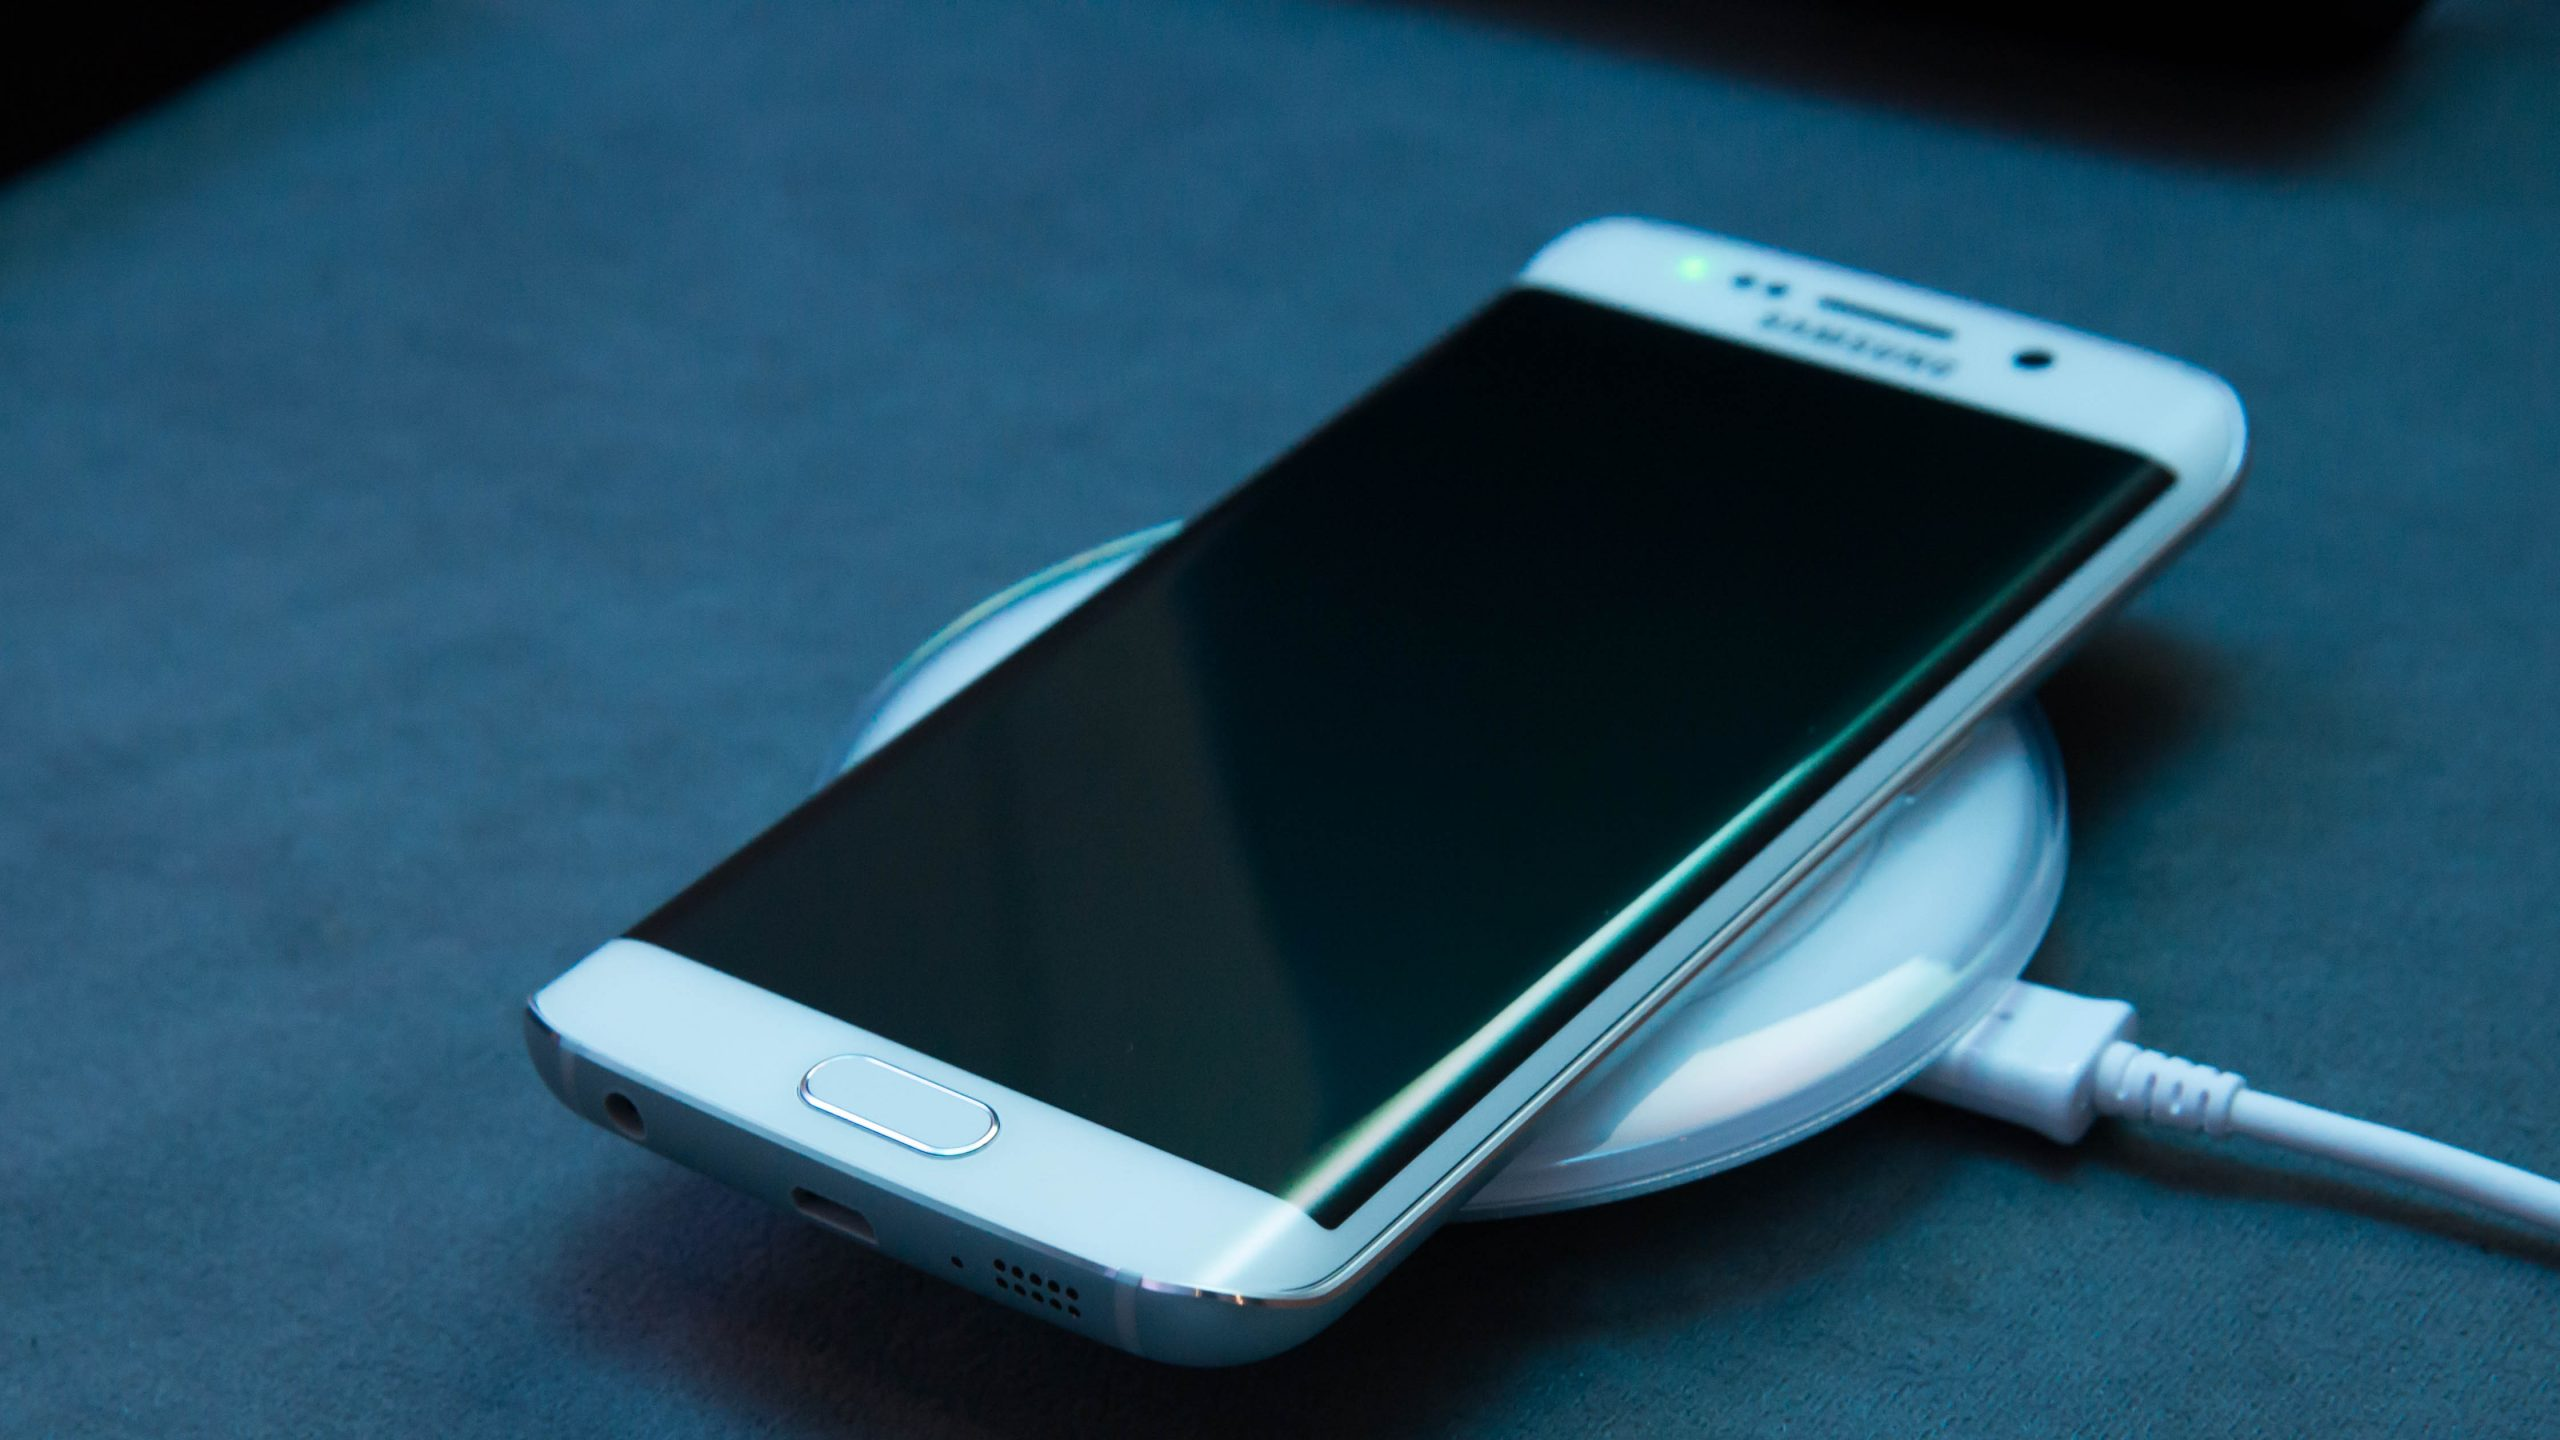 Top 10 Best Chargers for Samsung Galaxy S6 Comparison